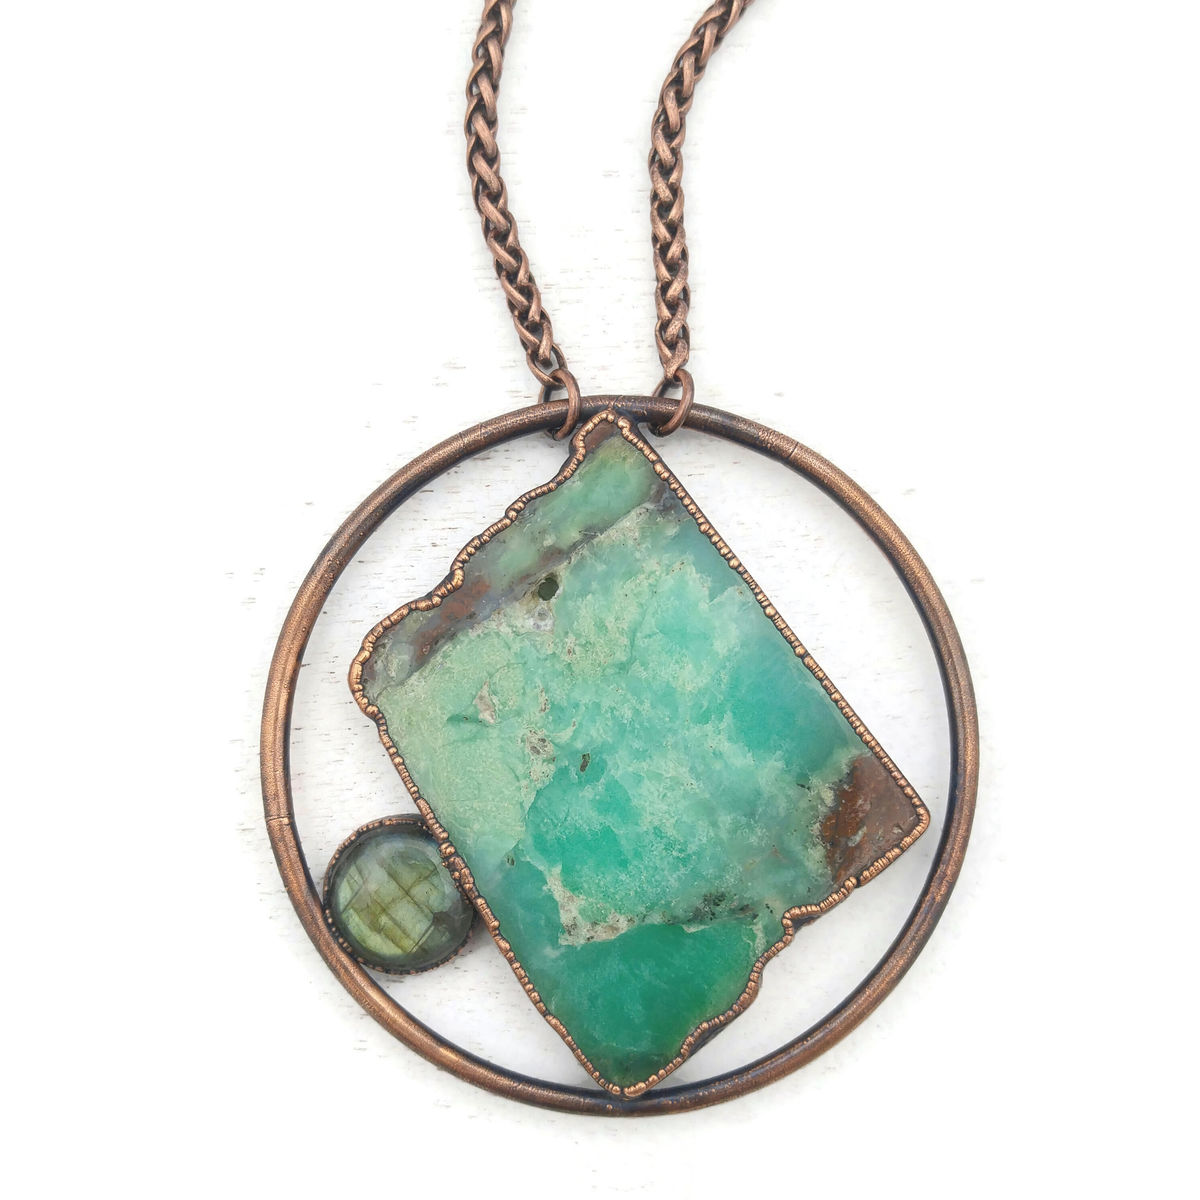 Chrysoprase Orb Necklace - product images  of